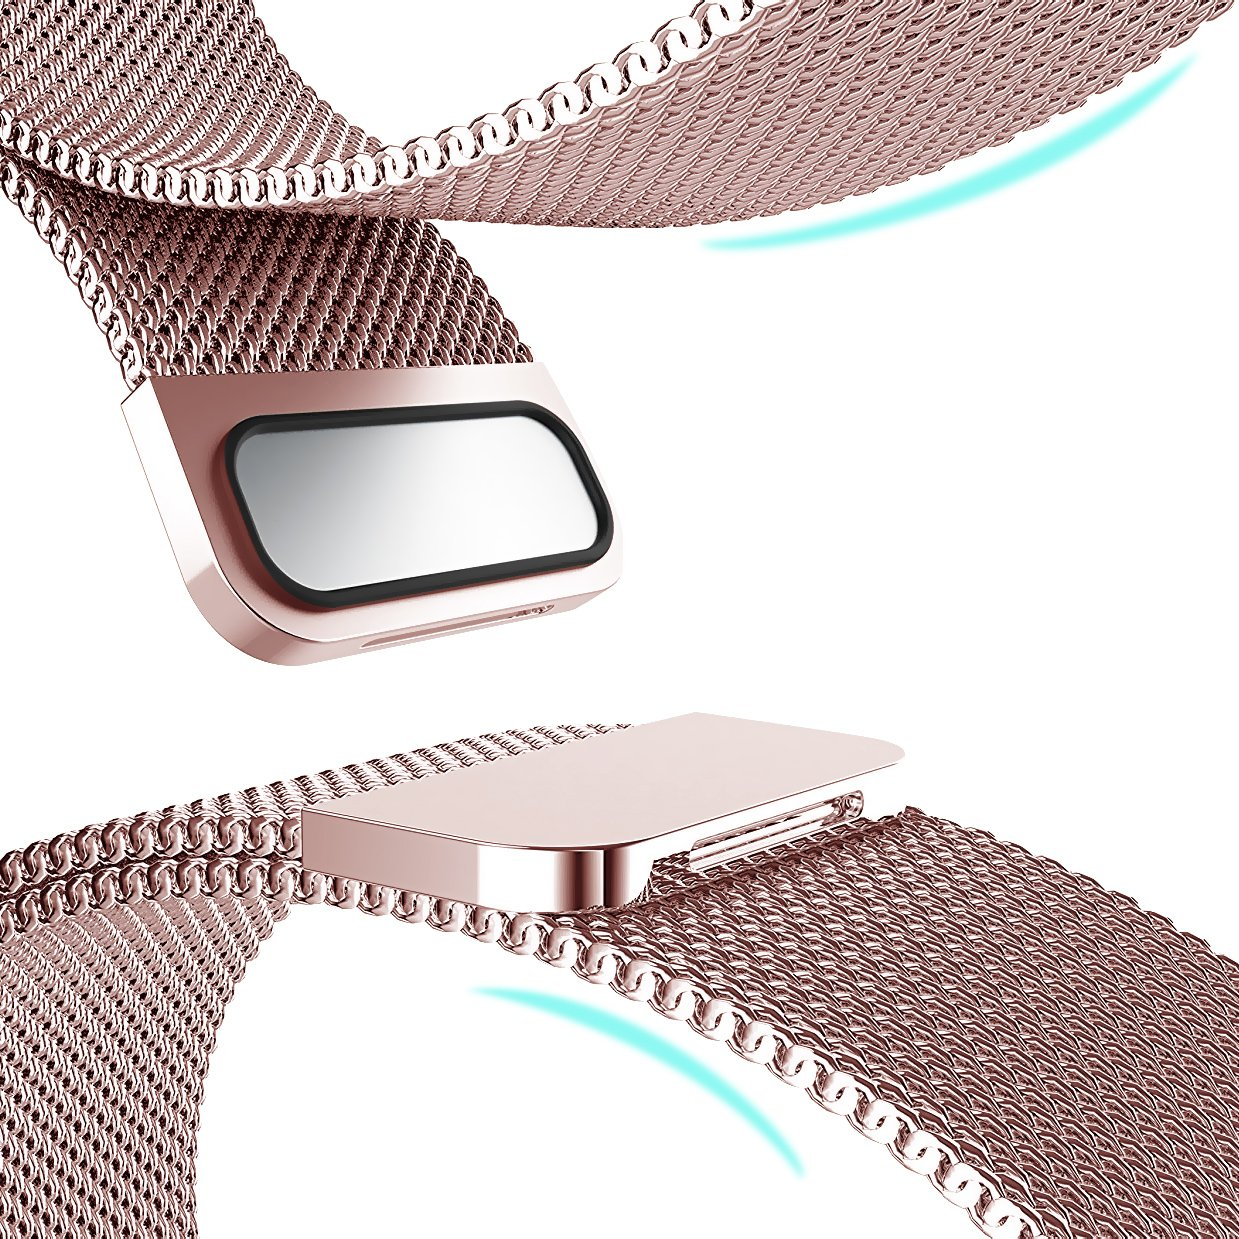 Amazon.com: Milanese Loop 38mm, SUNKONG For Apple Watch Band Stainless  Steel Milanese Mesh Loop Replacement for Apple Watch Series 1/2/3 And All  Models, ...